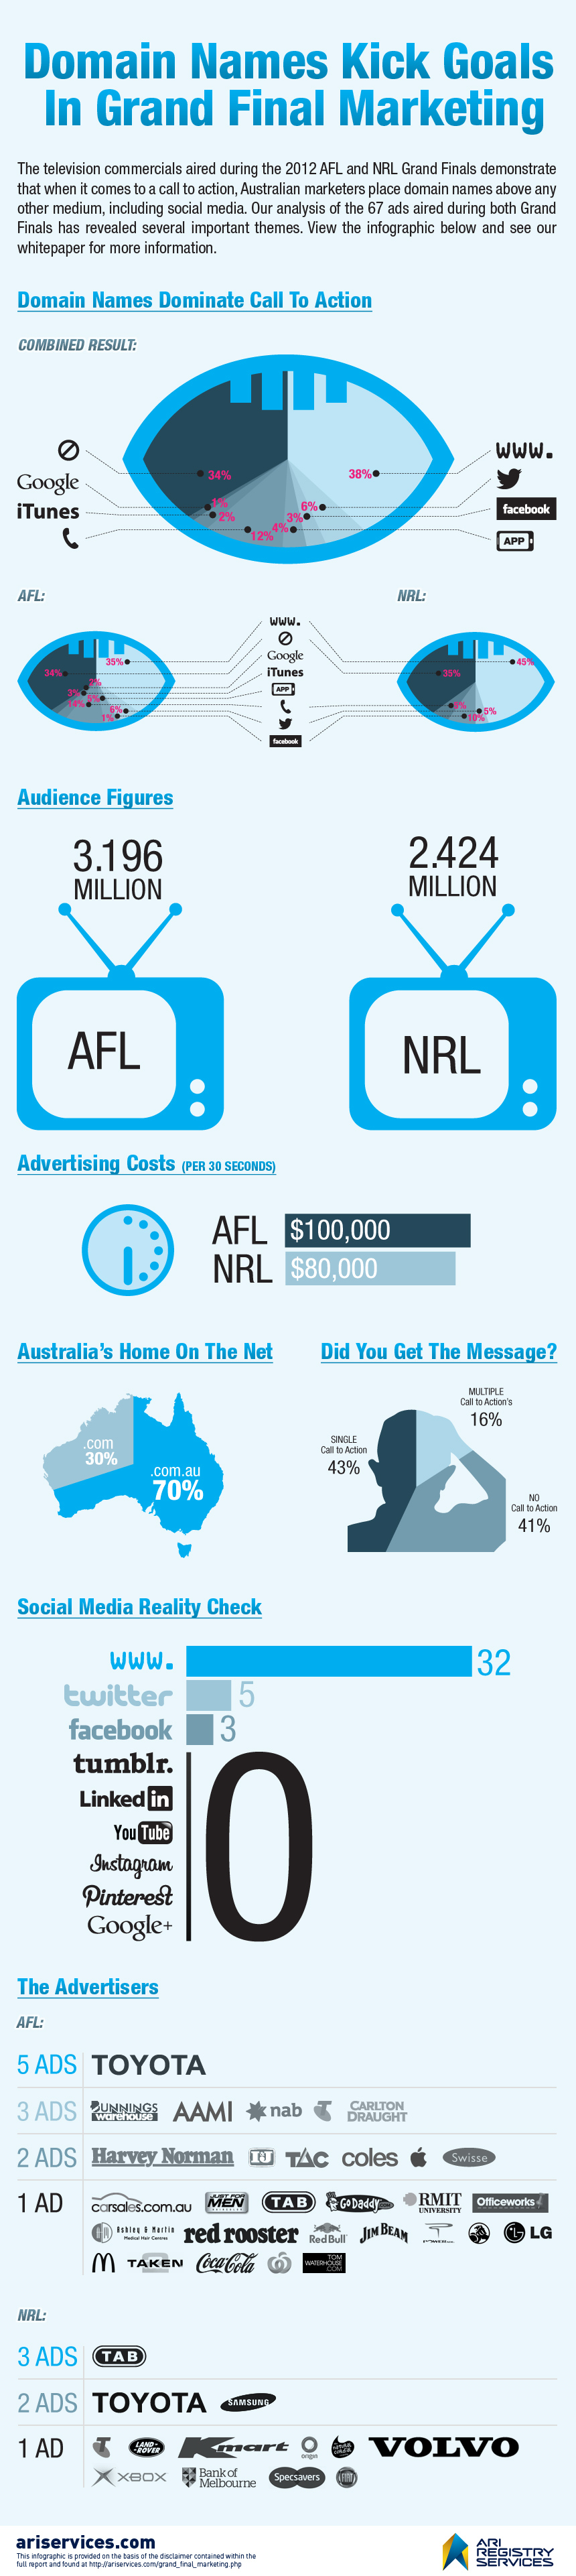 domain-names-kick-goals-in-grand-final-marketing_50933dcea2078